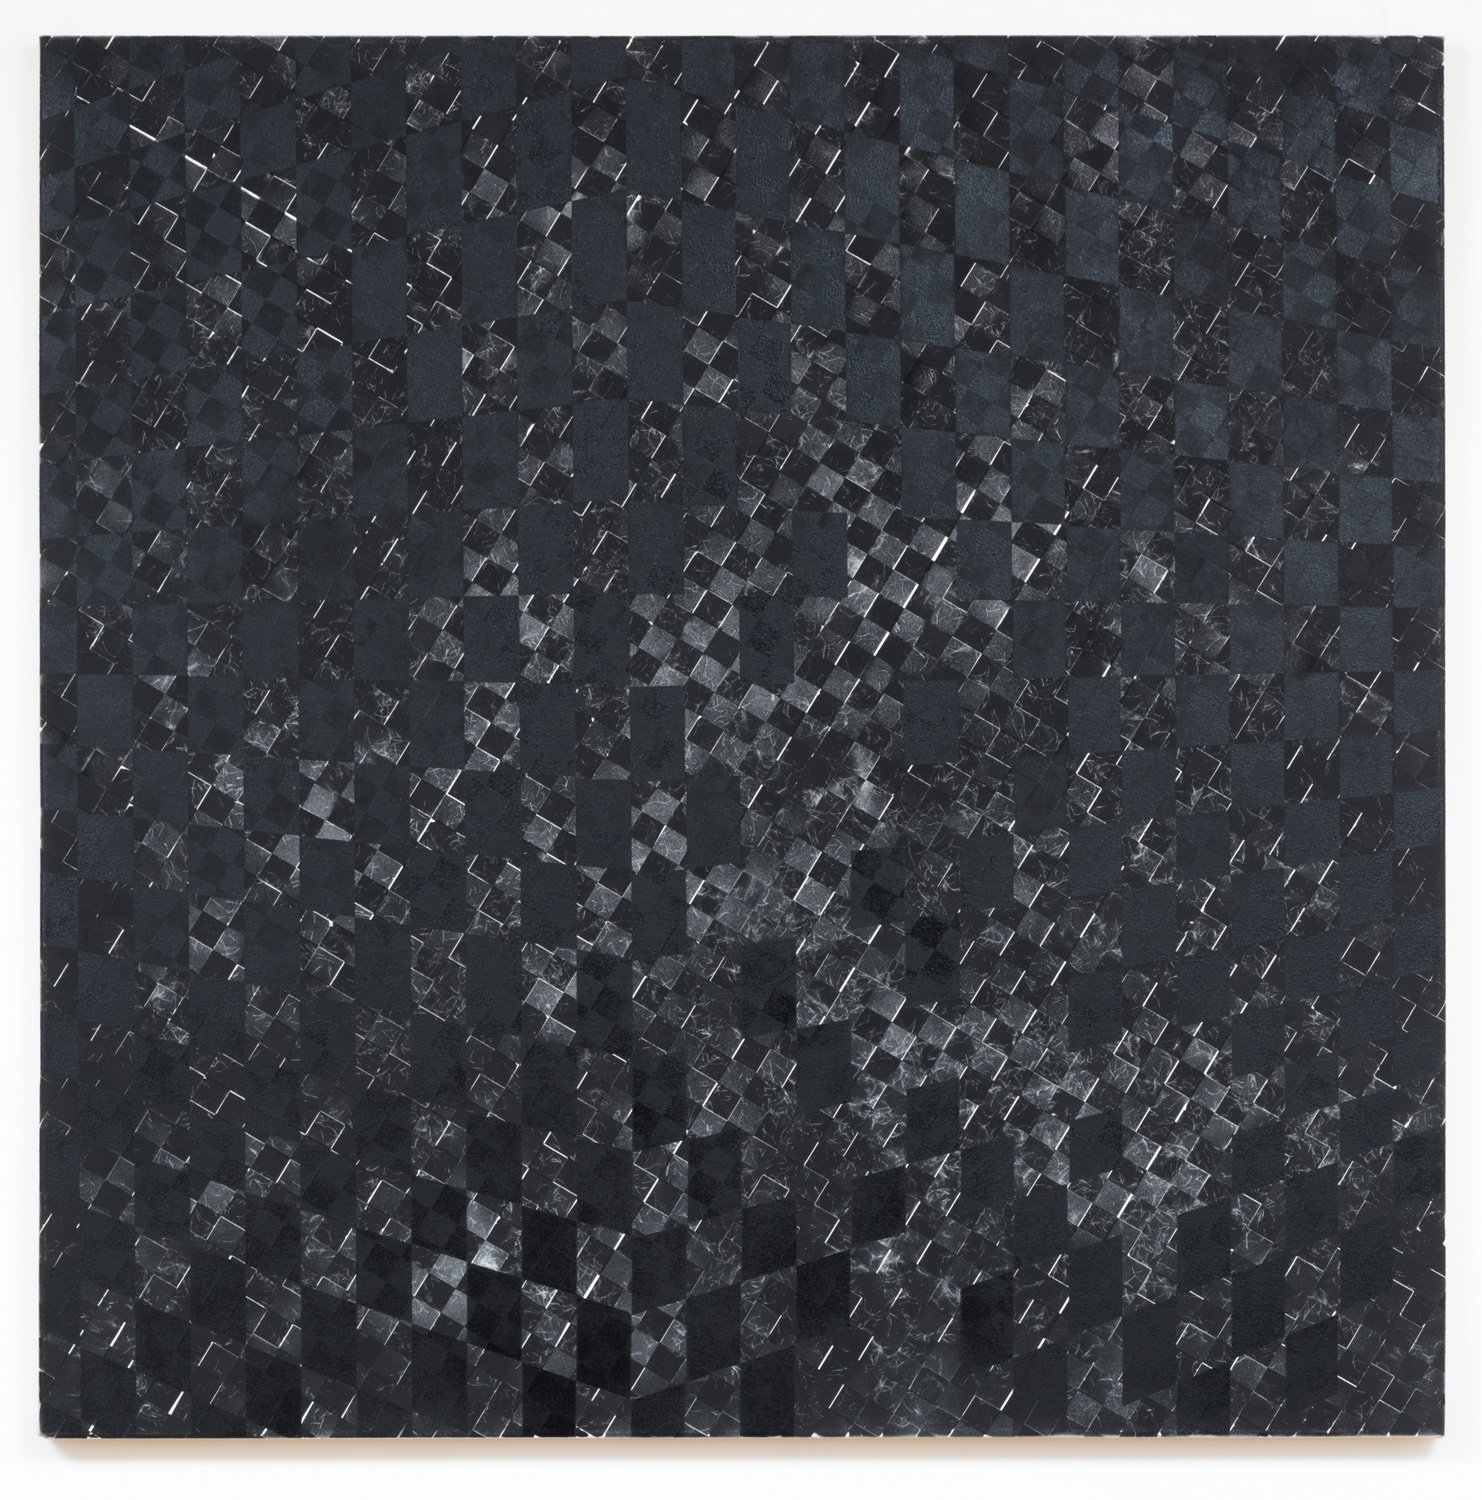 Danny Jauregui   Untitled 8  (2015) Enamel and human hair on canvas, 48 x 48in.